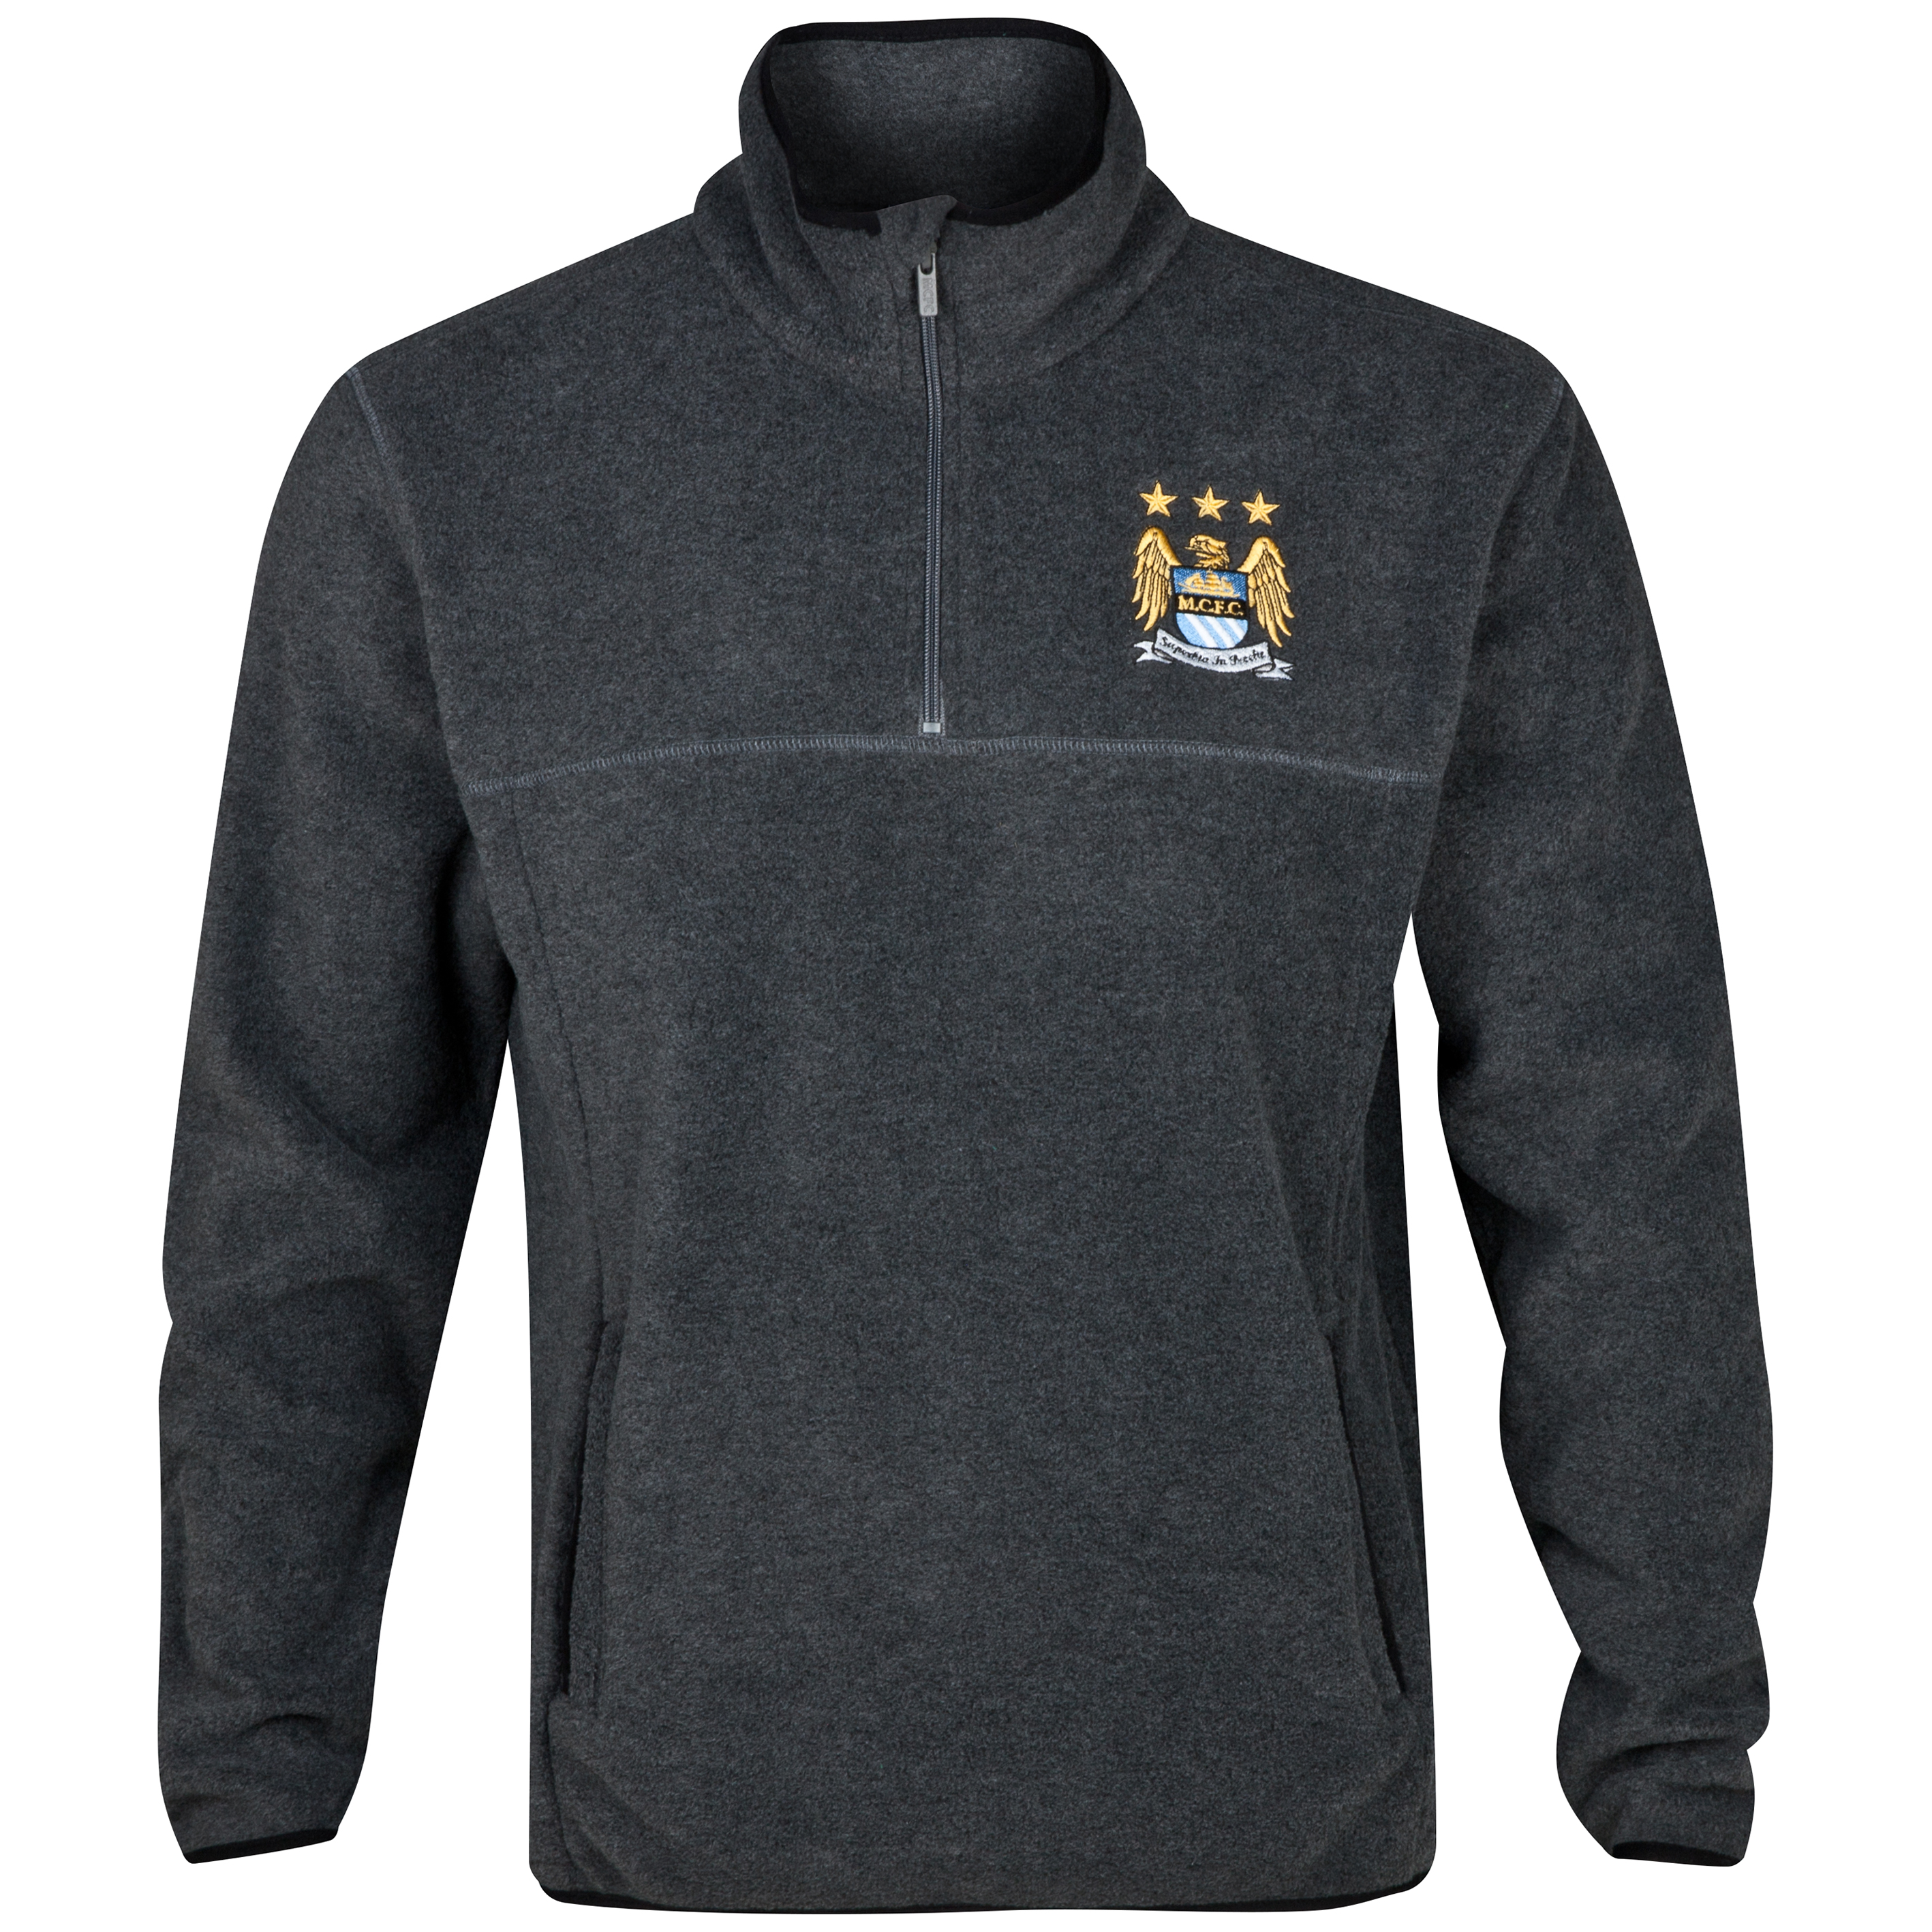 Manchester City Essentials Field Fleece - Older Boys Charcoal